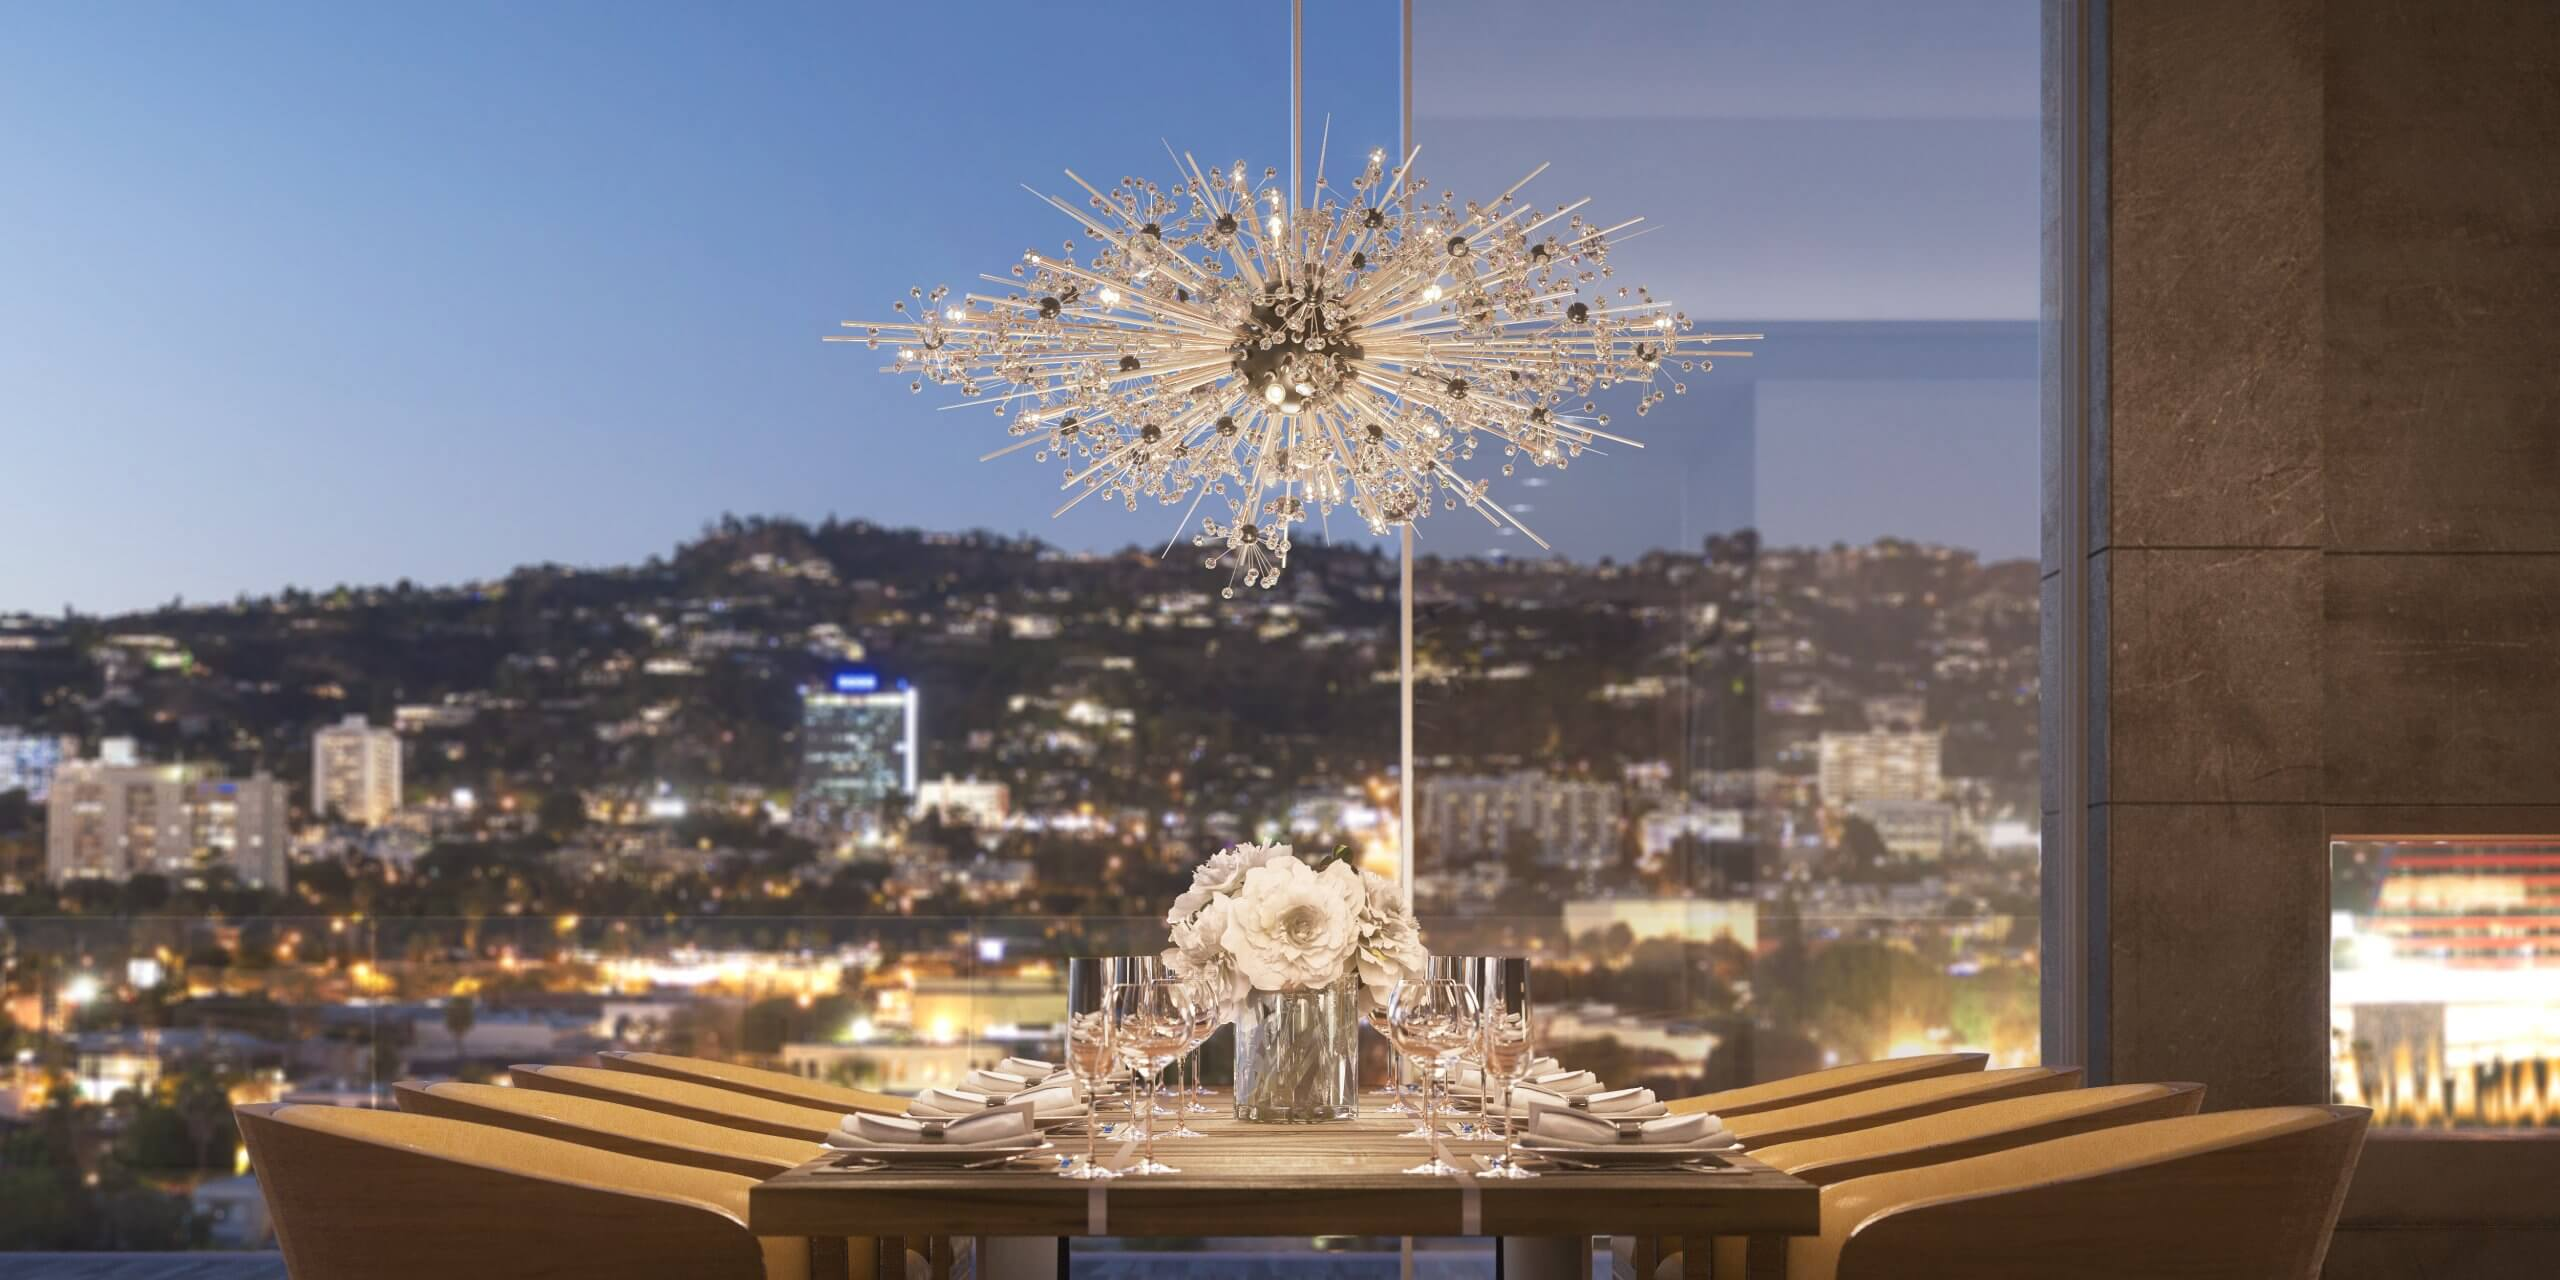 Penthouse-01_Vignettes_Nighttime_Dining-Table